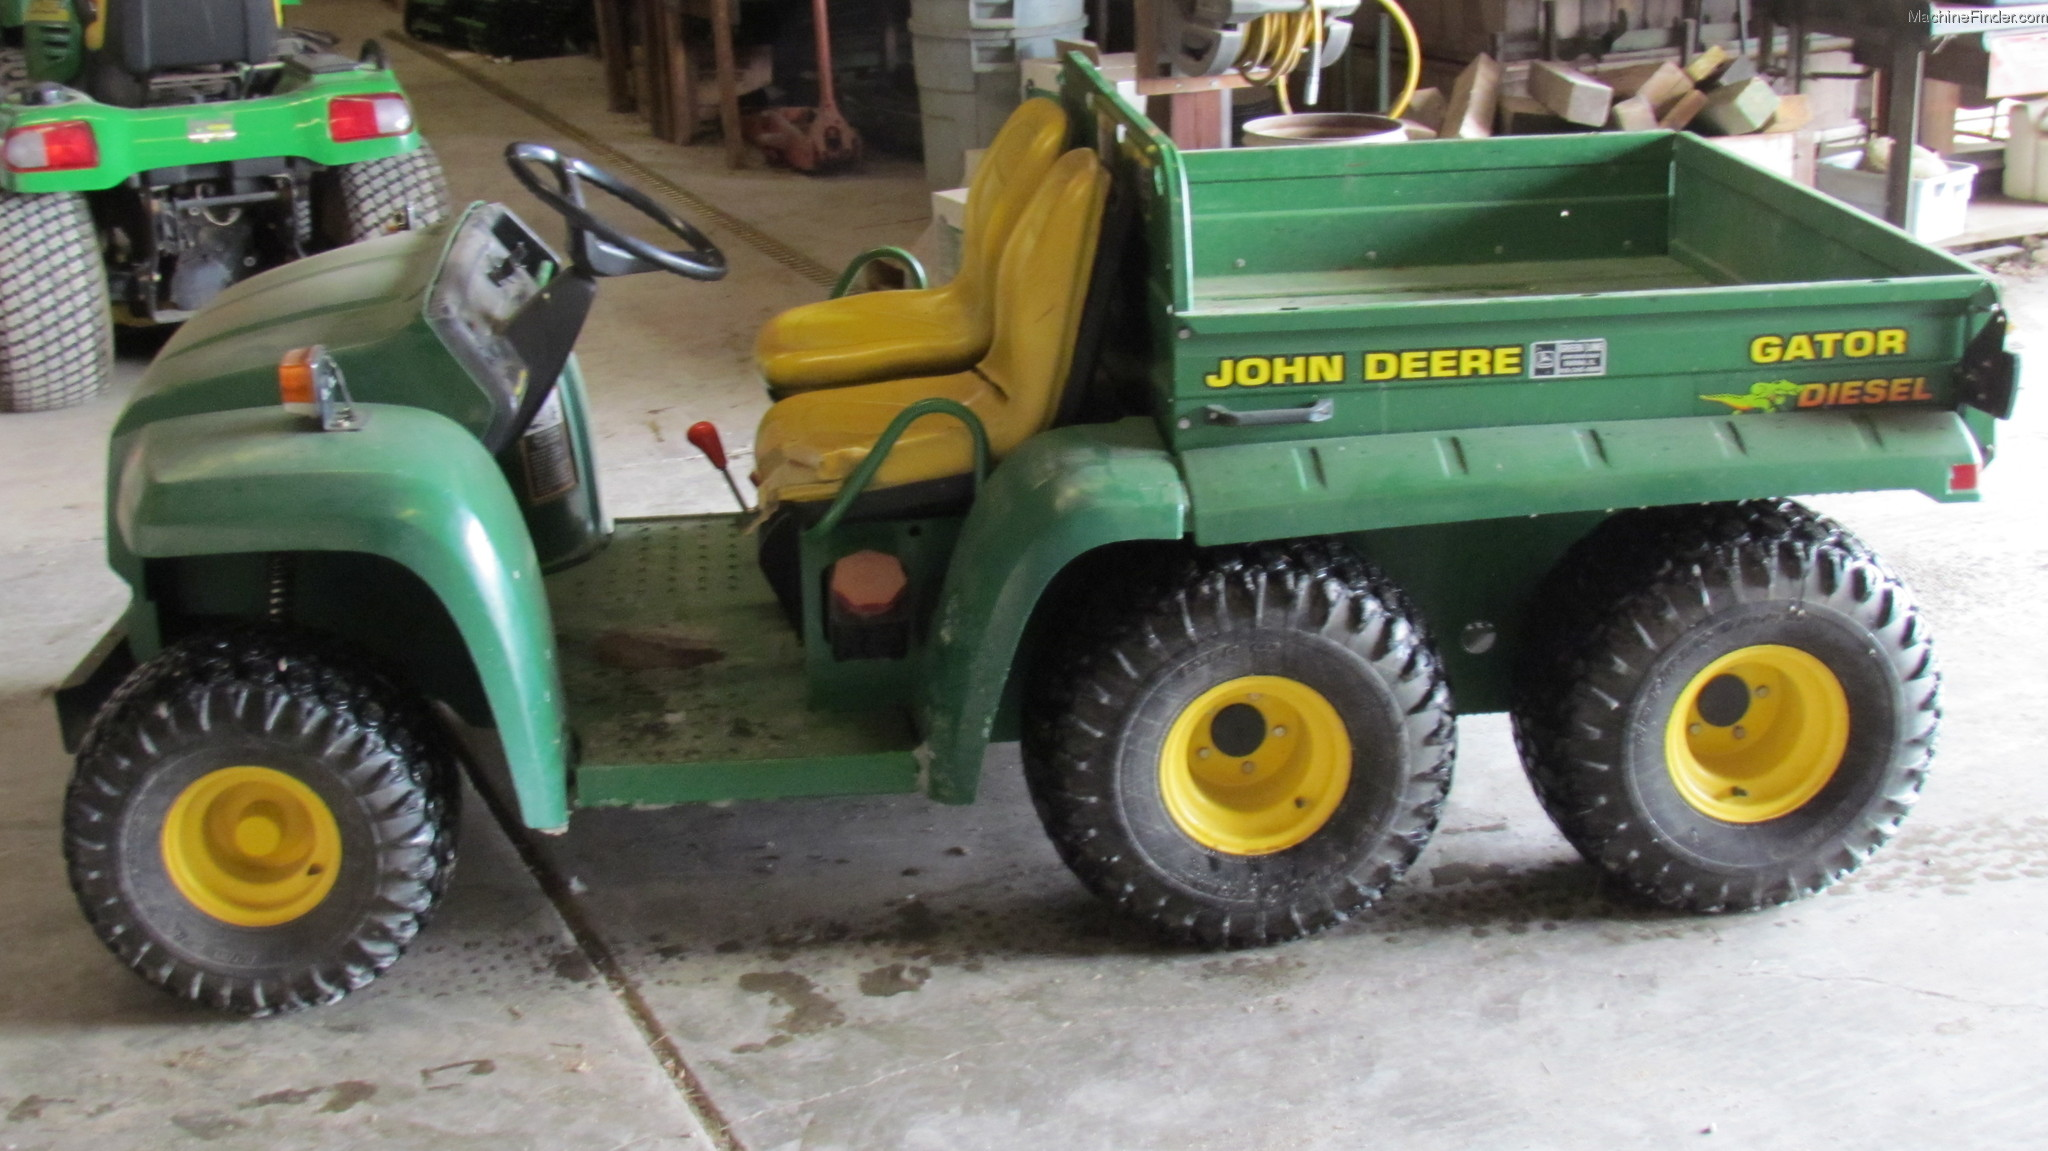 1997 john deere 6x4 diesel gator atvs gators john. Black Bedroom Furniture Sets. Home Design Ideas